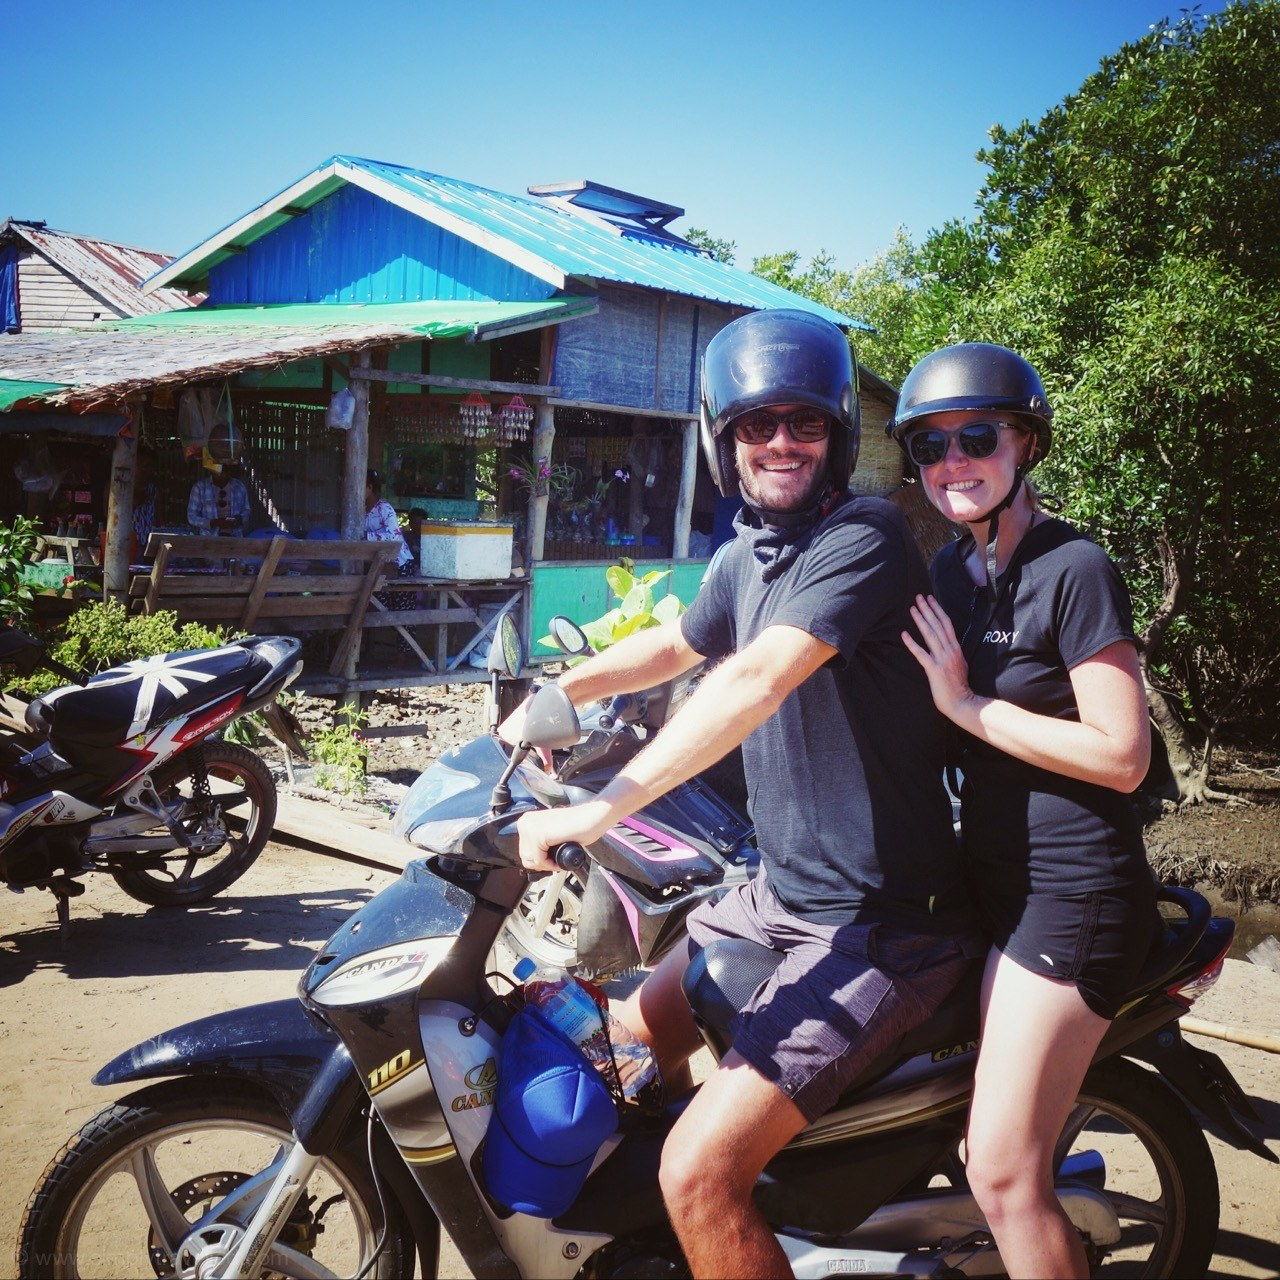 Enjoy the ride! - ngwe saung beach